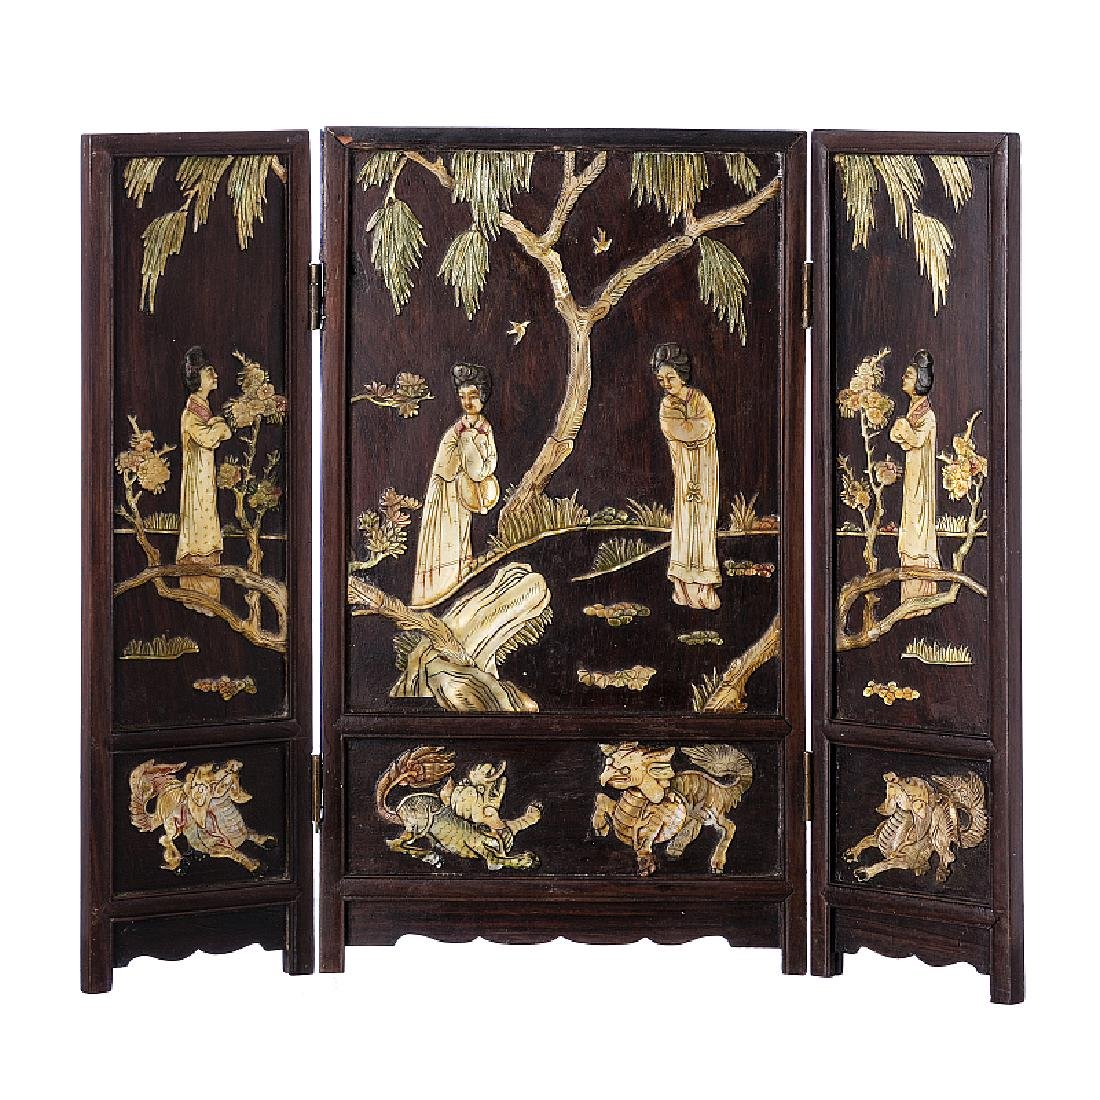 Chinese table folding screen